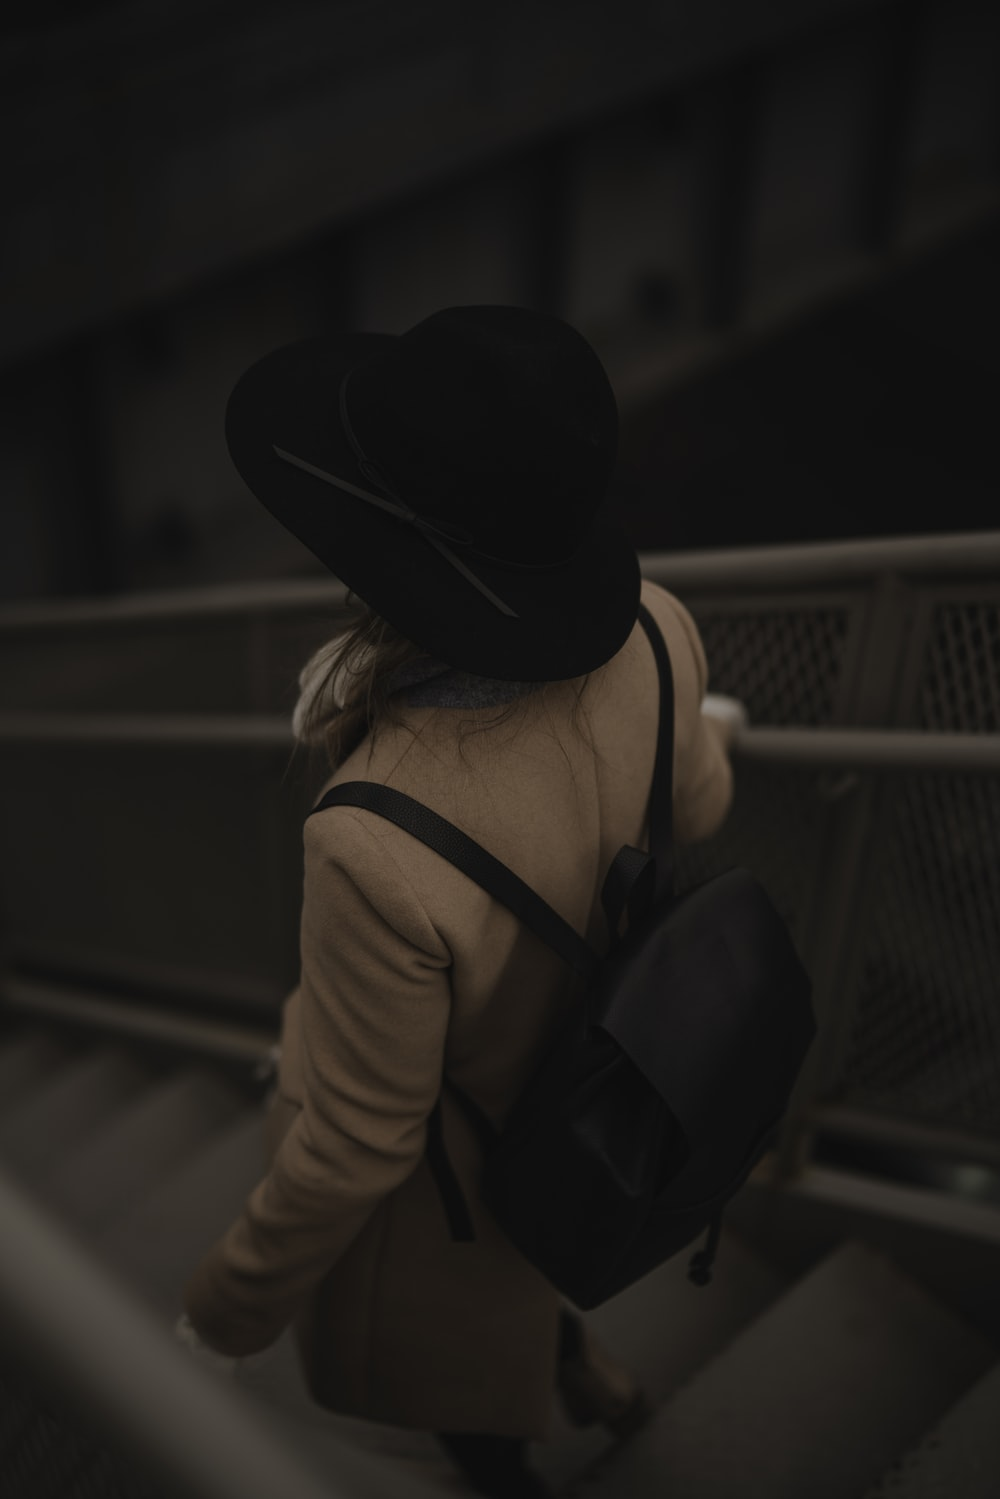 person carrying black backpack while walking downards of stair